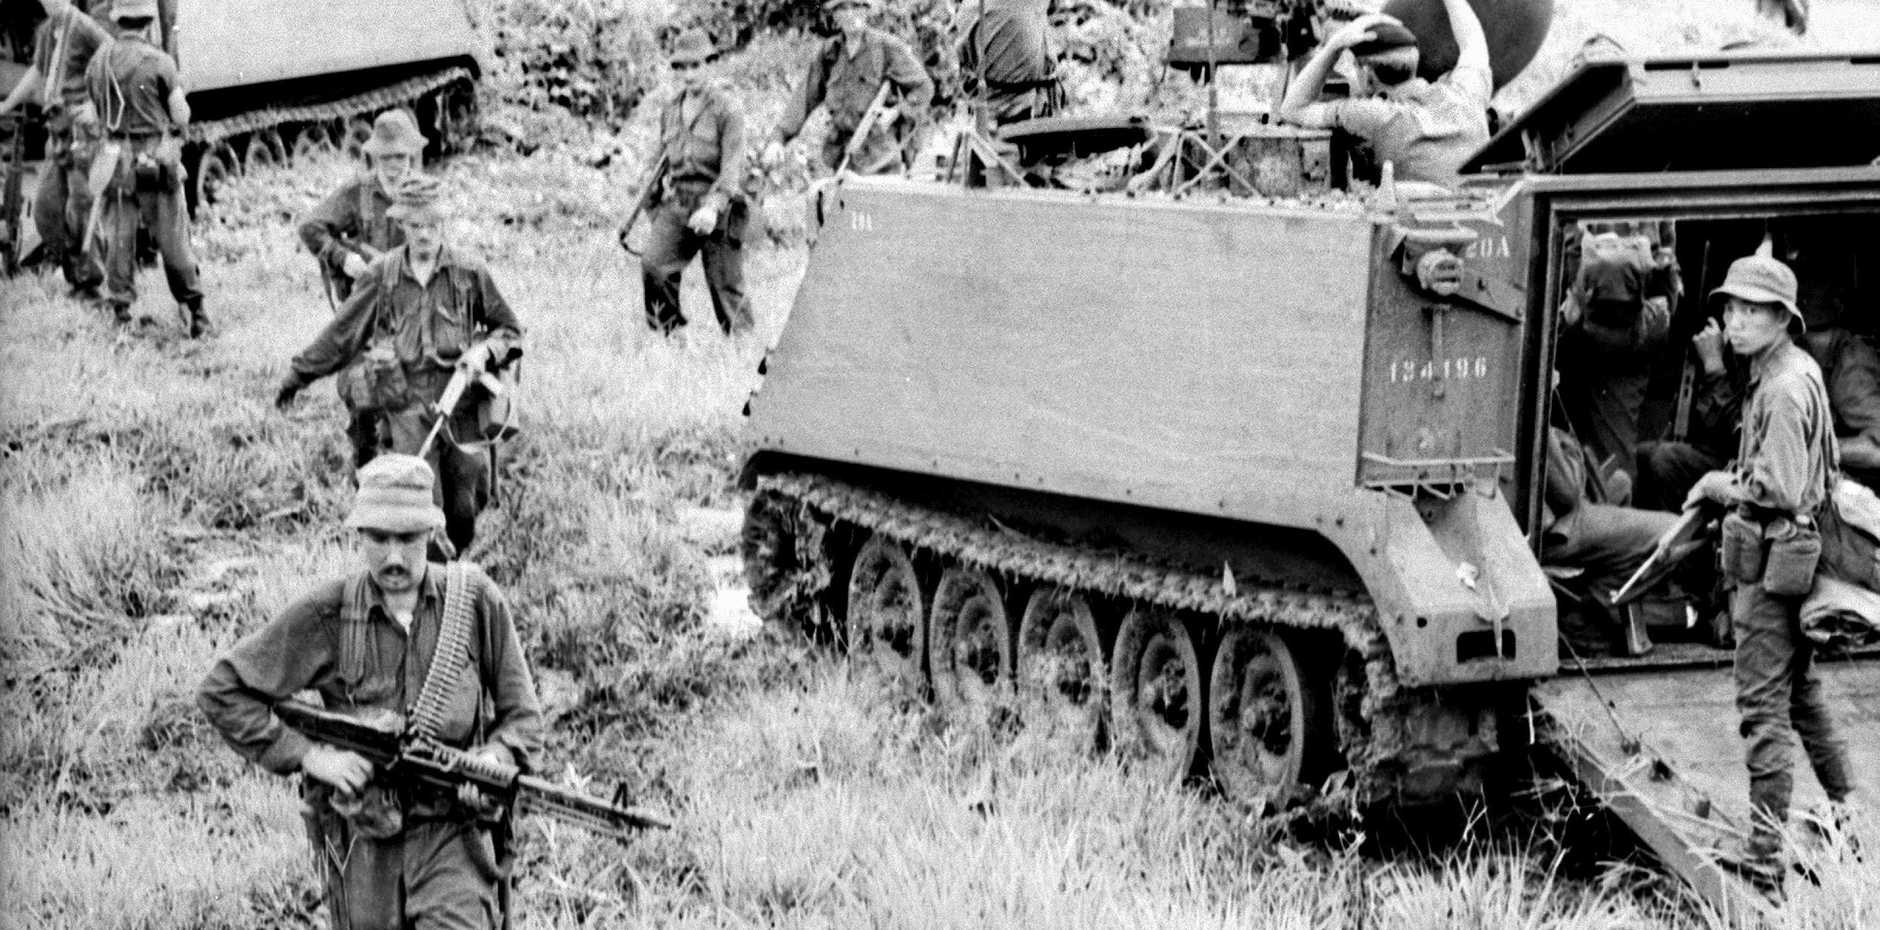 THE DAY AFTER: On August 19, 1966, troops of 1APC Squadron and Infantry sweep the area the day after the battle of Long Tan in then Phuoc Tuy province of South Vietnam, now Ba Ria-Vung Tau province of Vietnam.